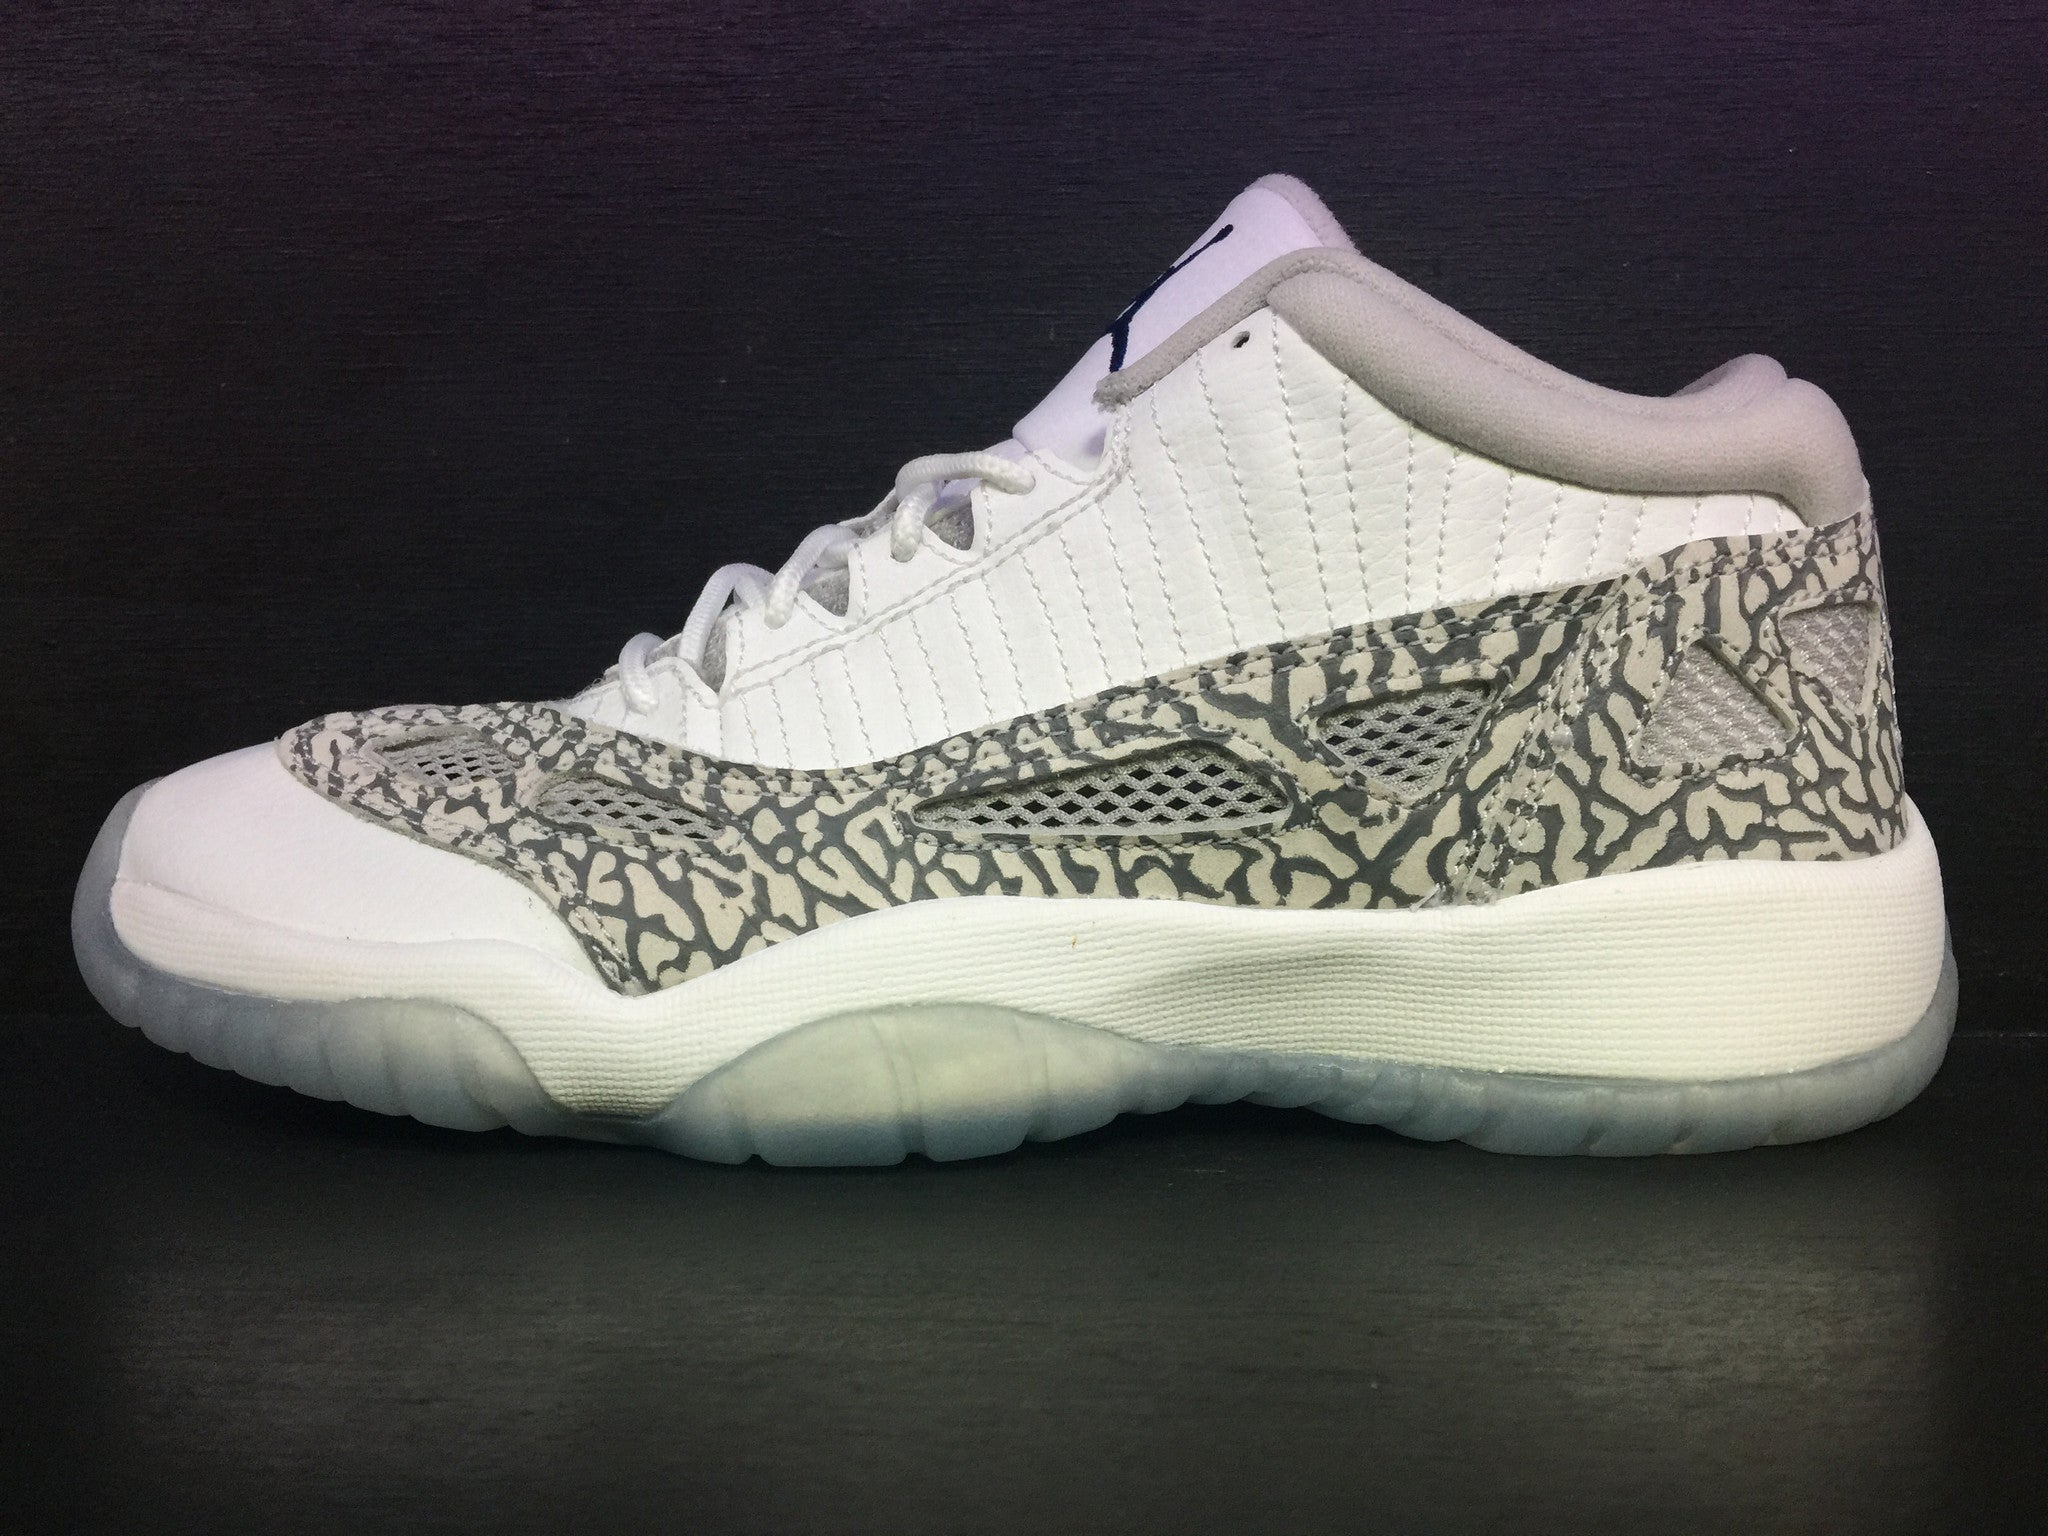 Air Jordan 11 Retro Low BG 'Cobalt'